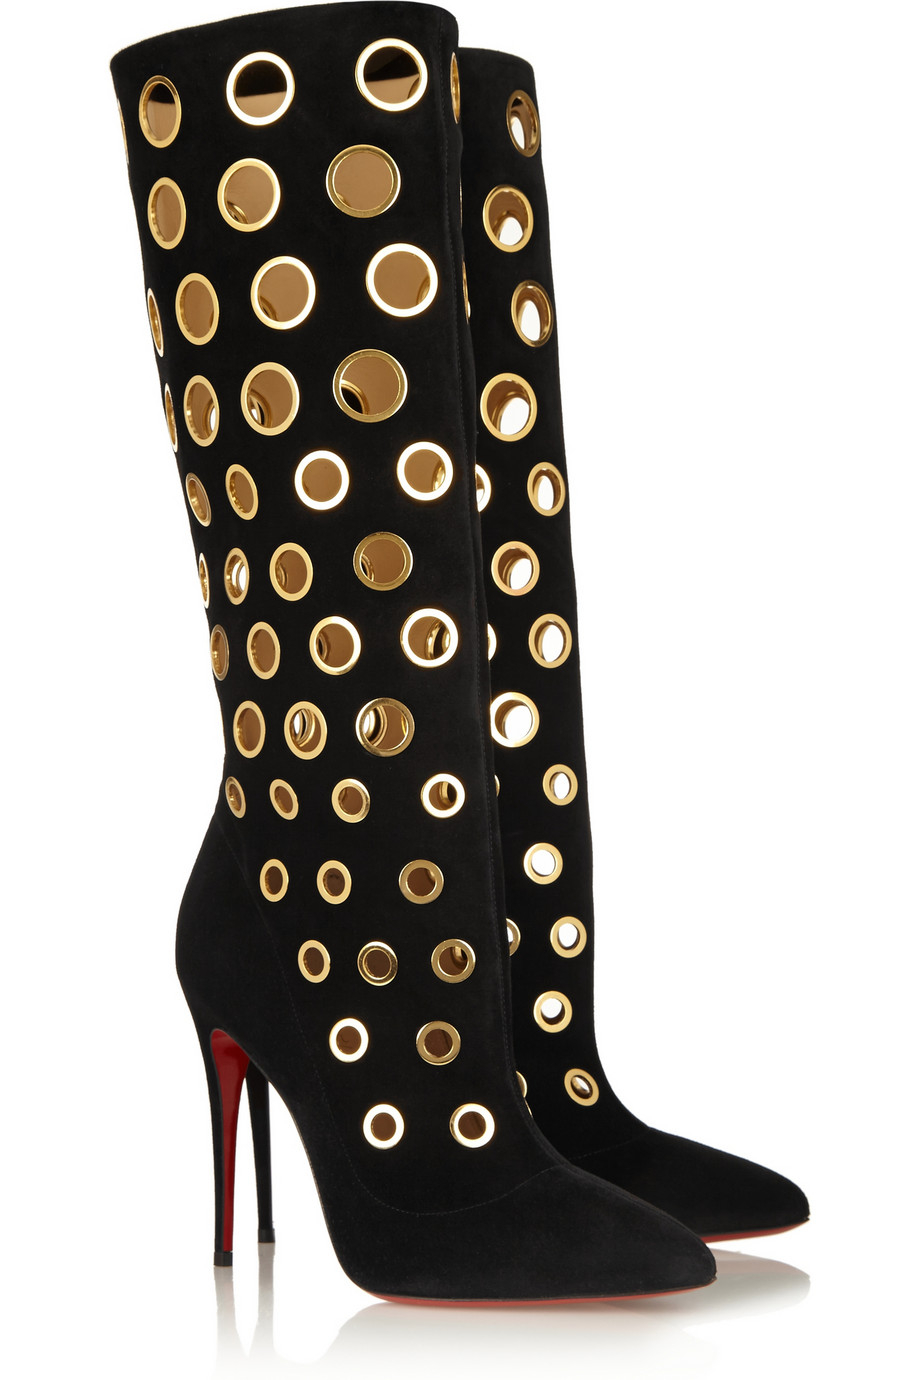 christian louboutin bellissima suede booties